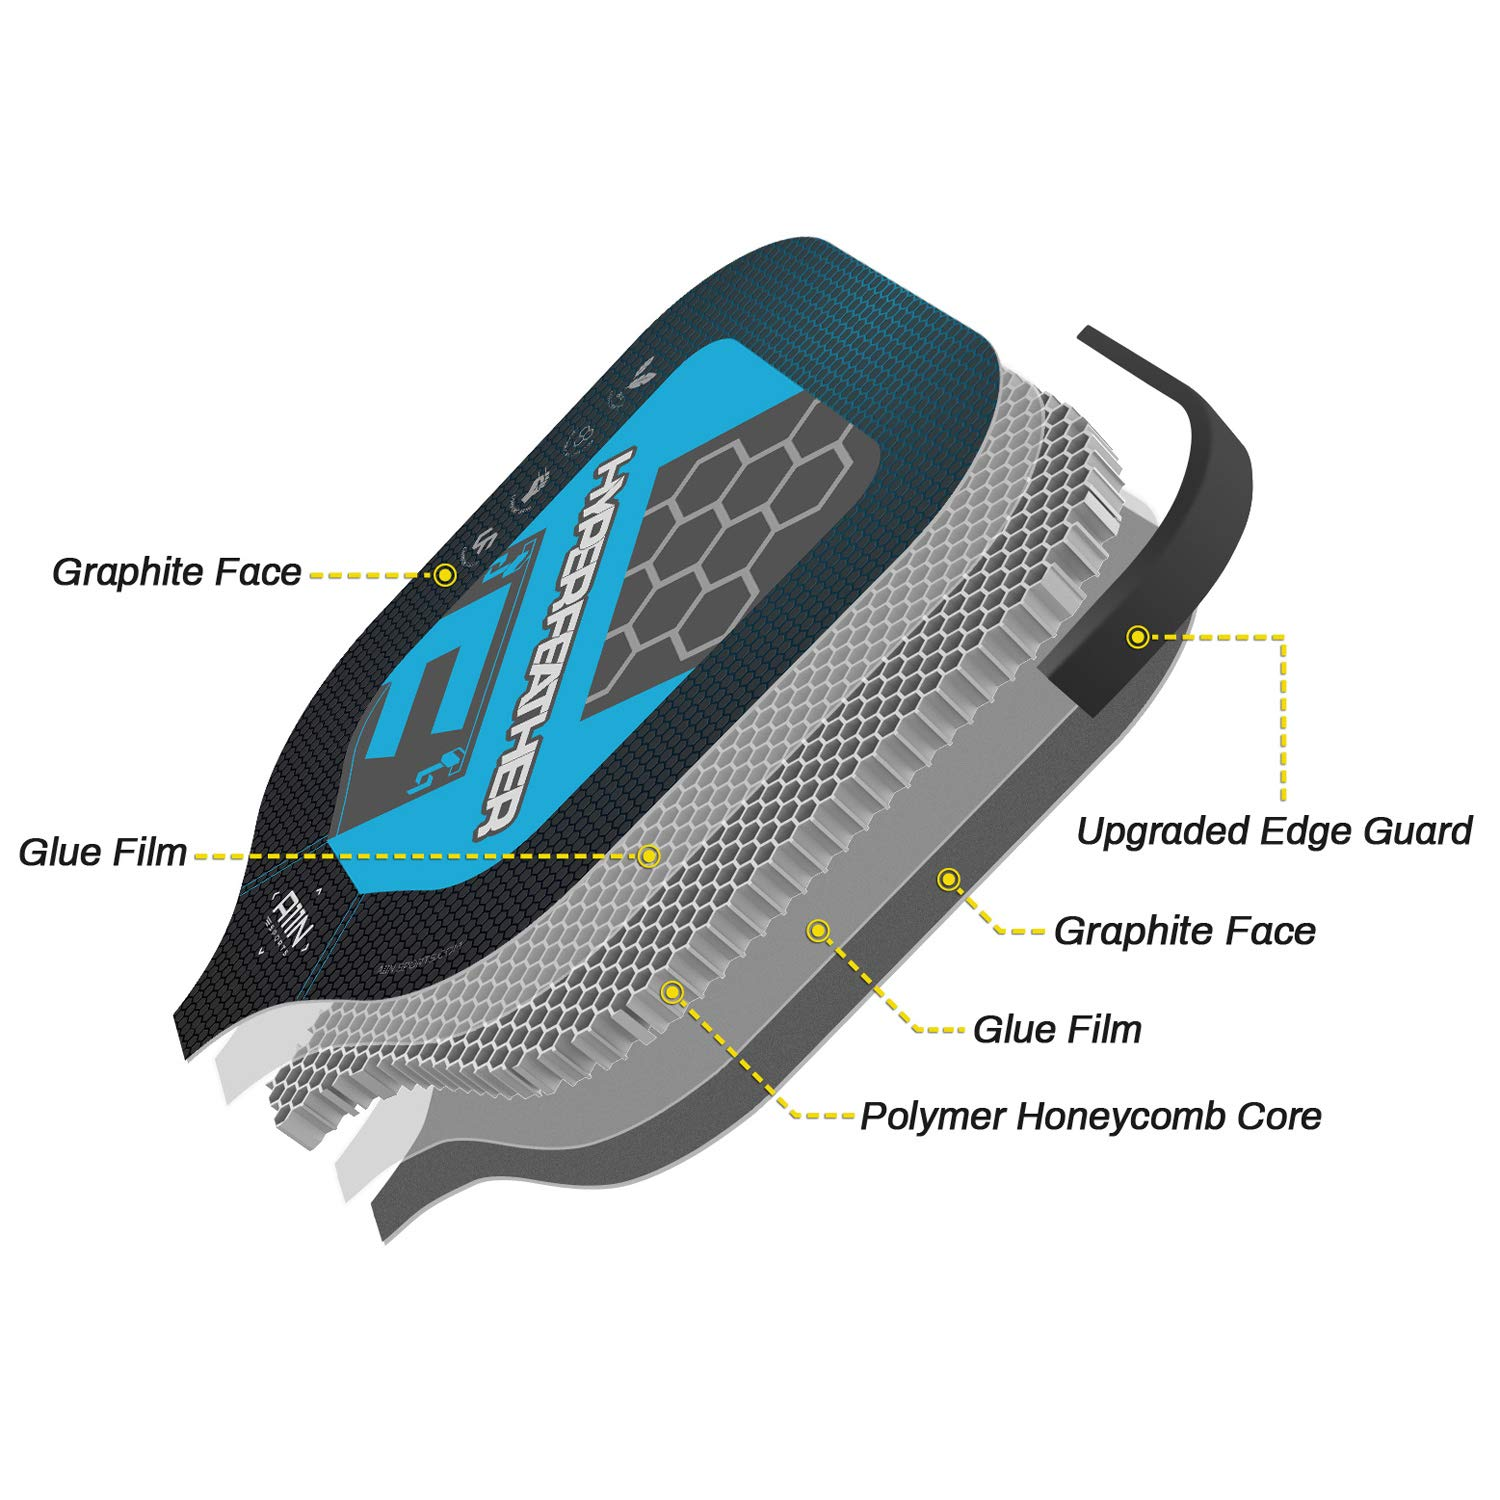 Includes Paddle Cover /& Overgrip 4.25 in Ultra Cushion Grip 8 Oz A11N Lightweight Graphite Pickleball Paddle- Upgrade Racquet Composite Polymer Honeycomb Core